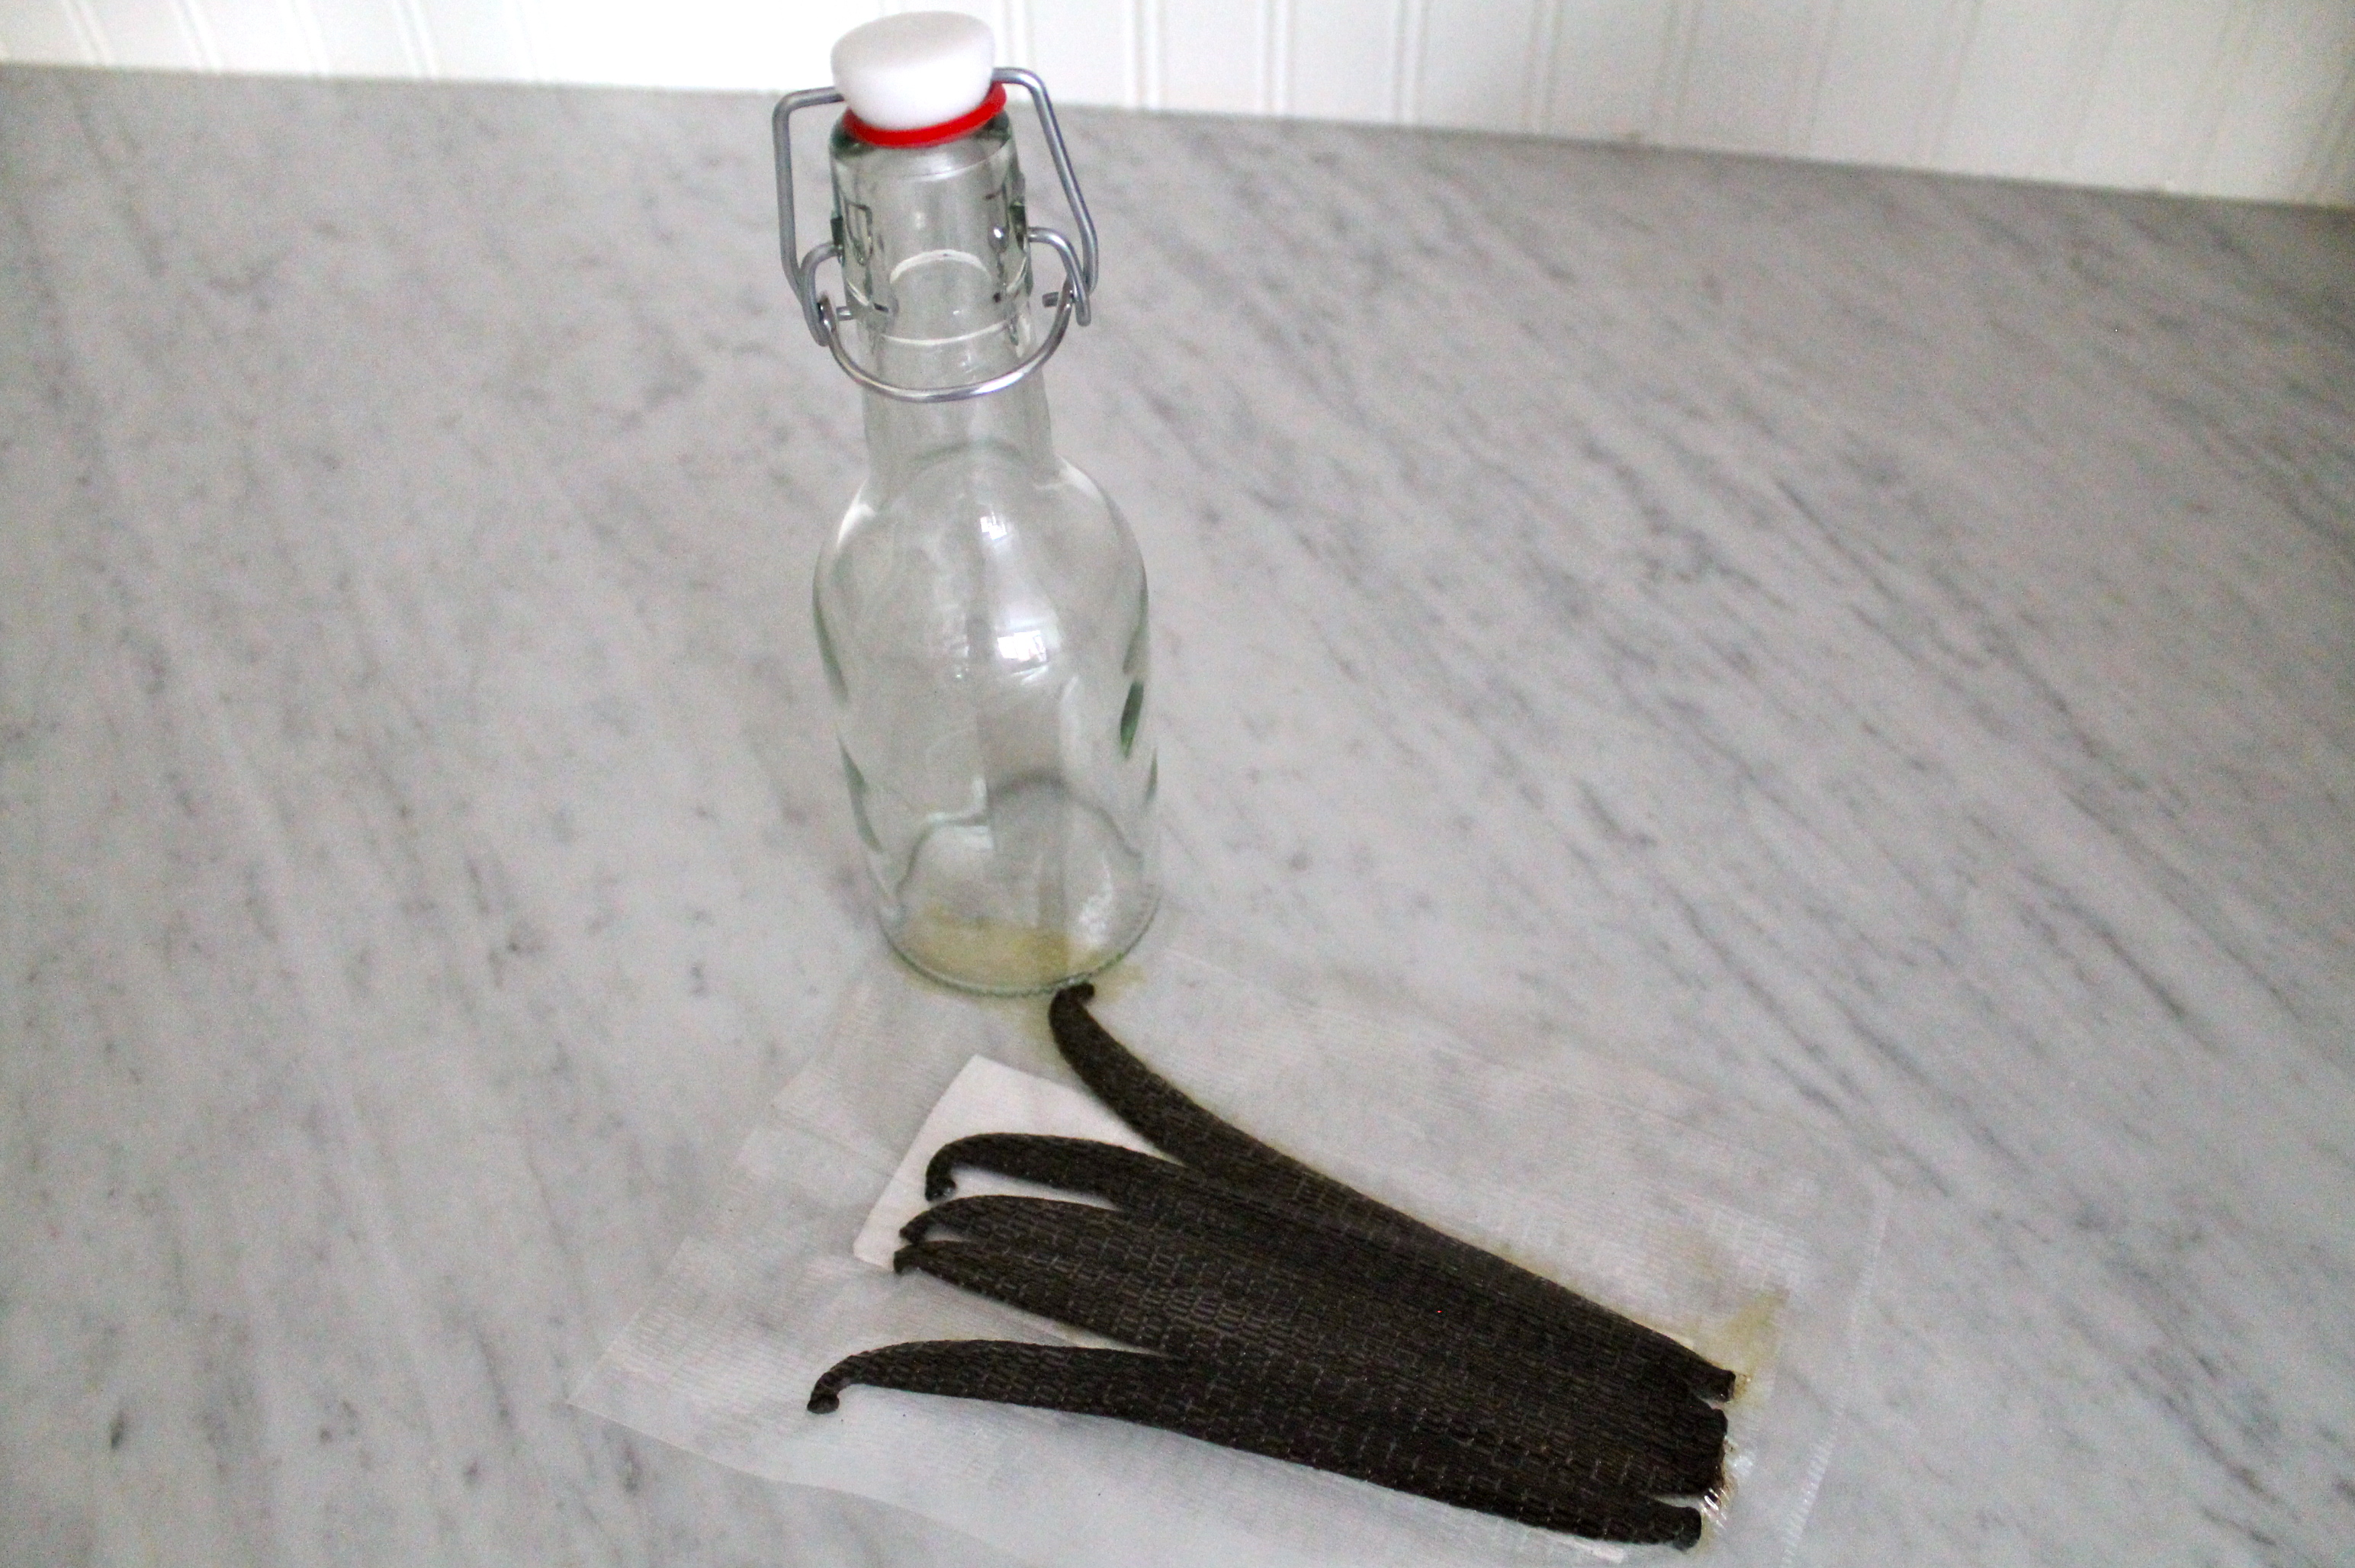 IMG 2474 - I Am Making Vanilla Extract